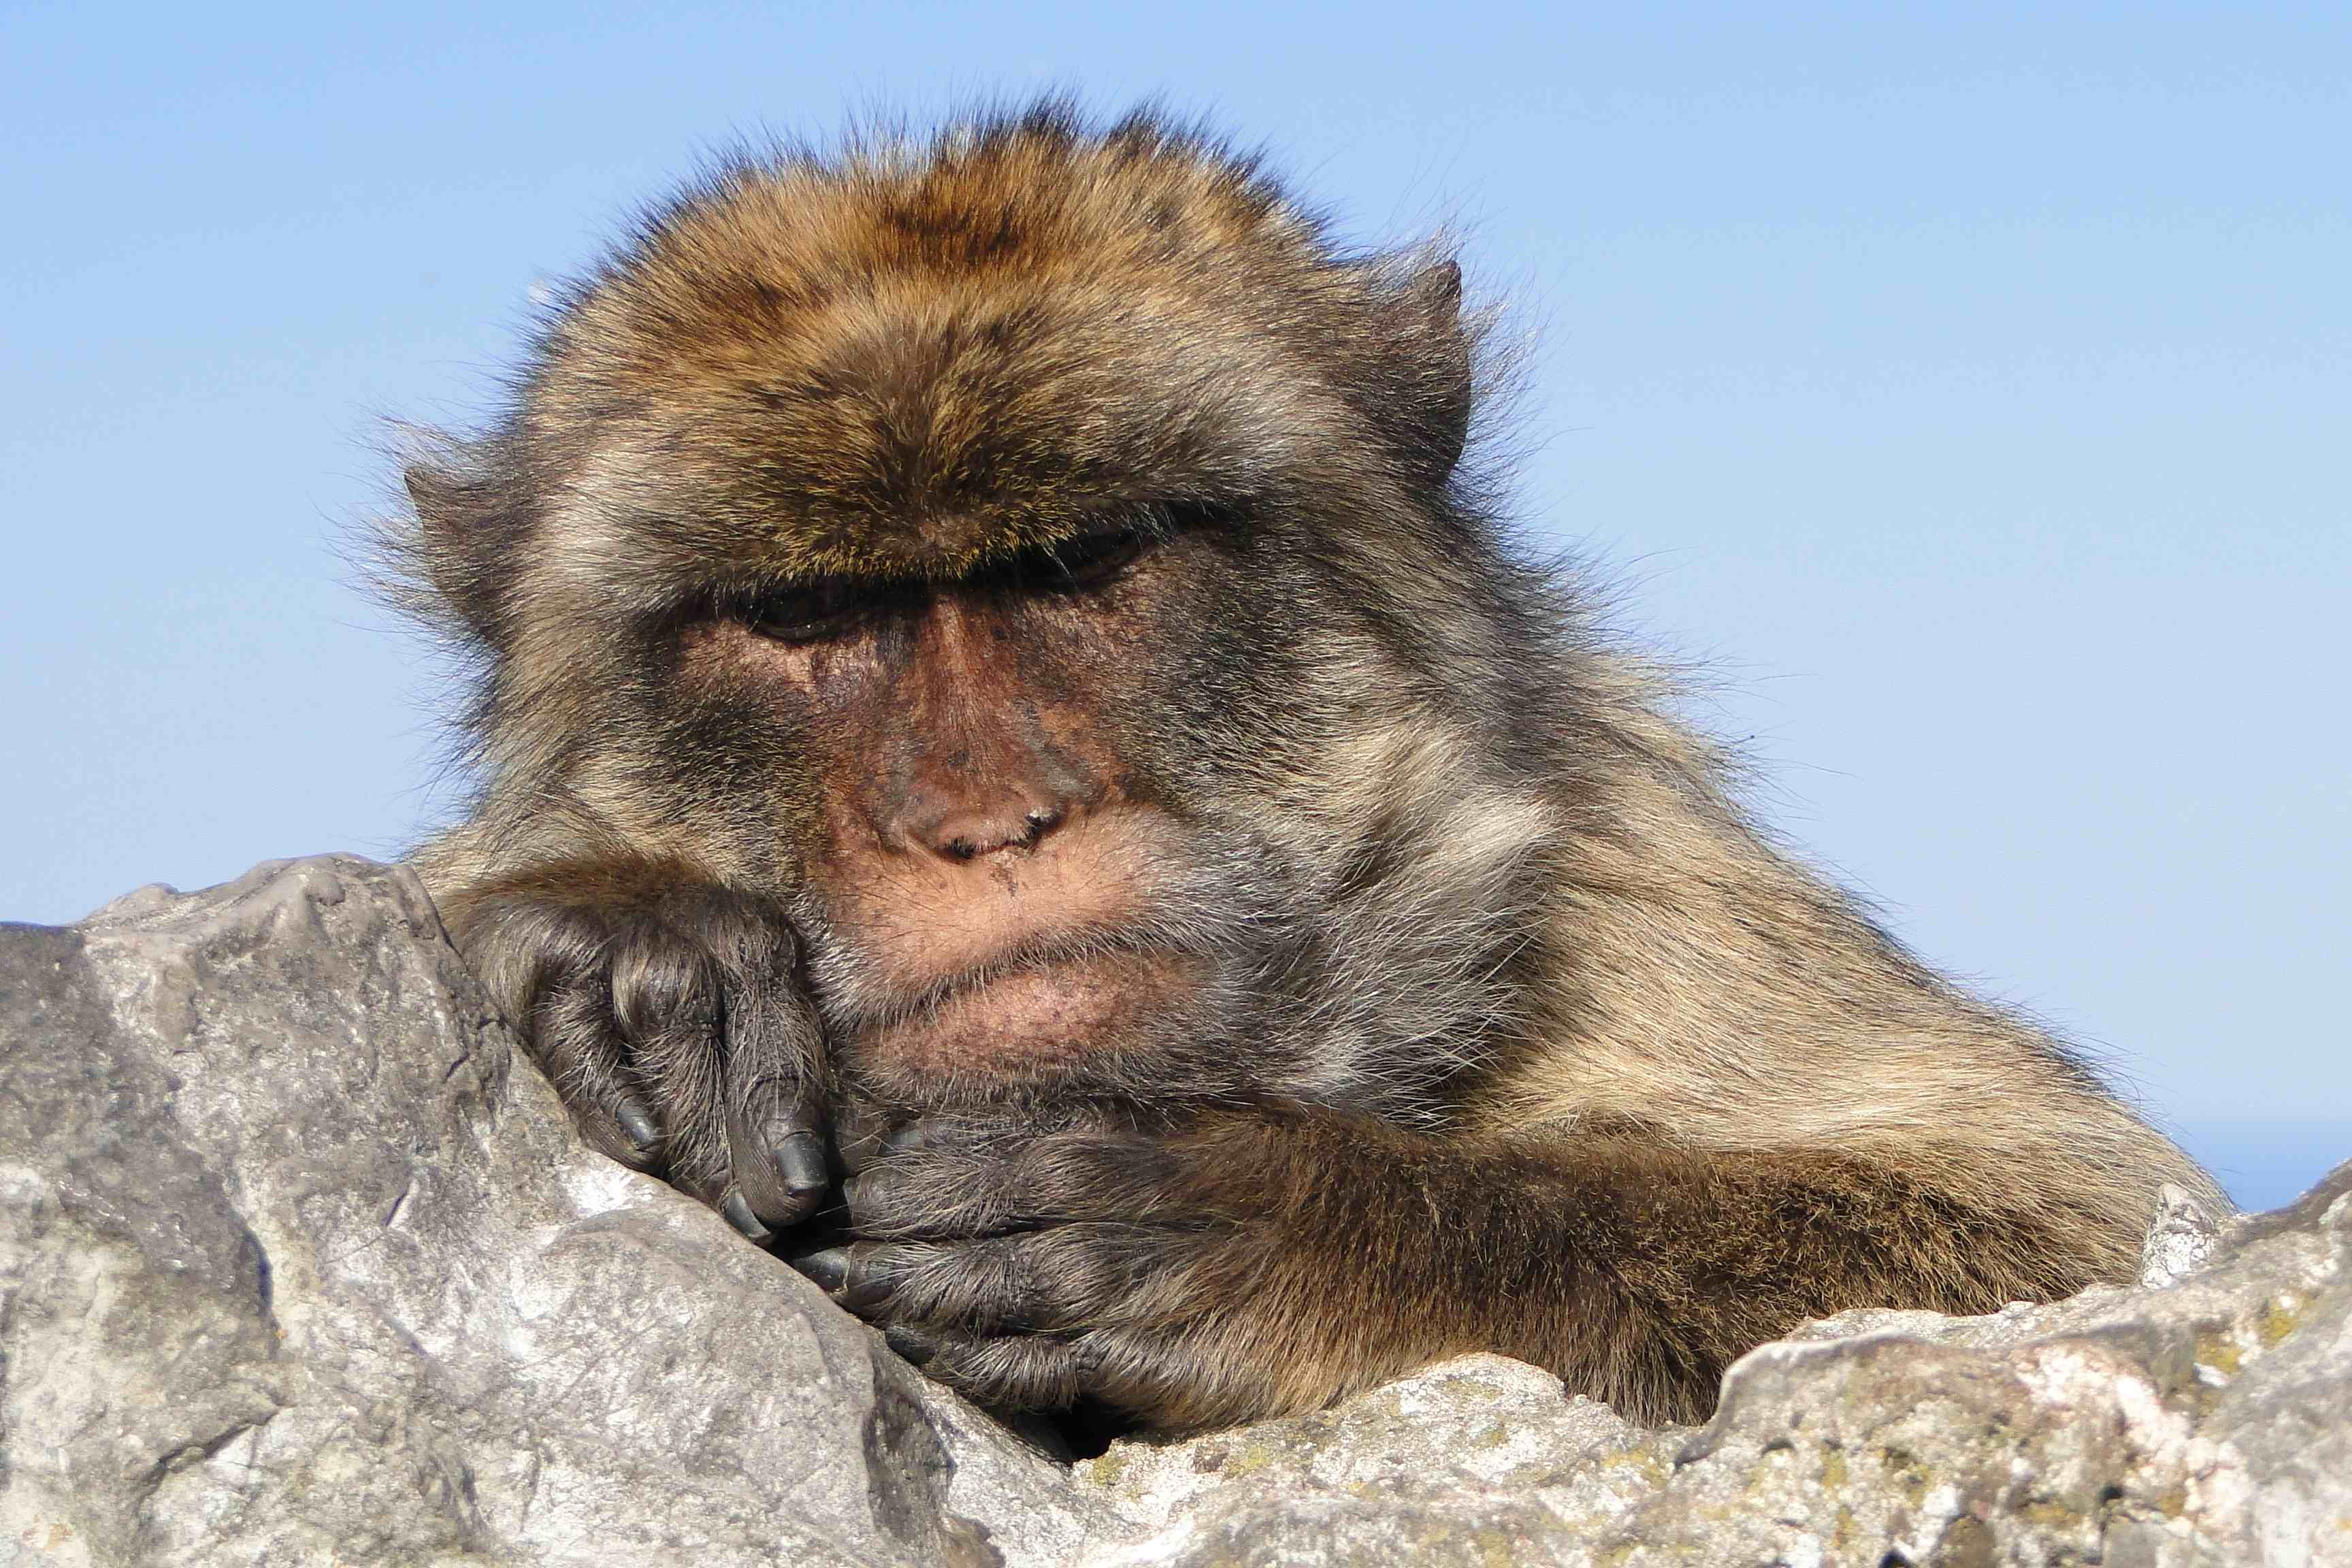 Monkeying Around in Gibraltar